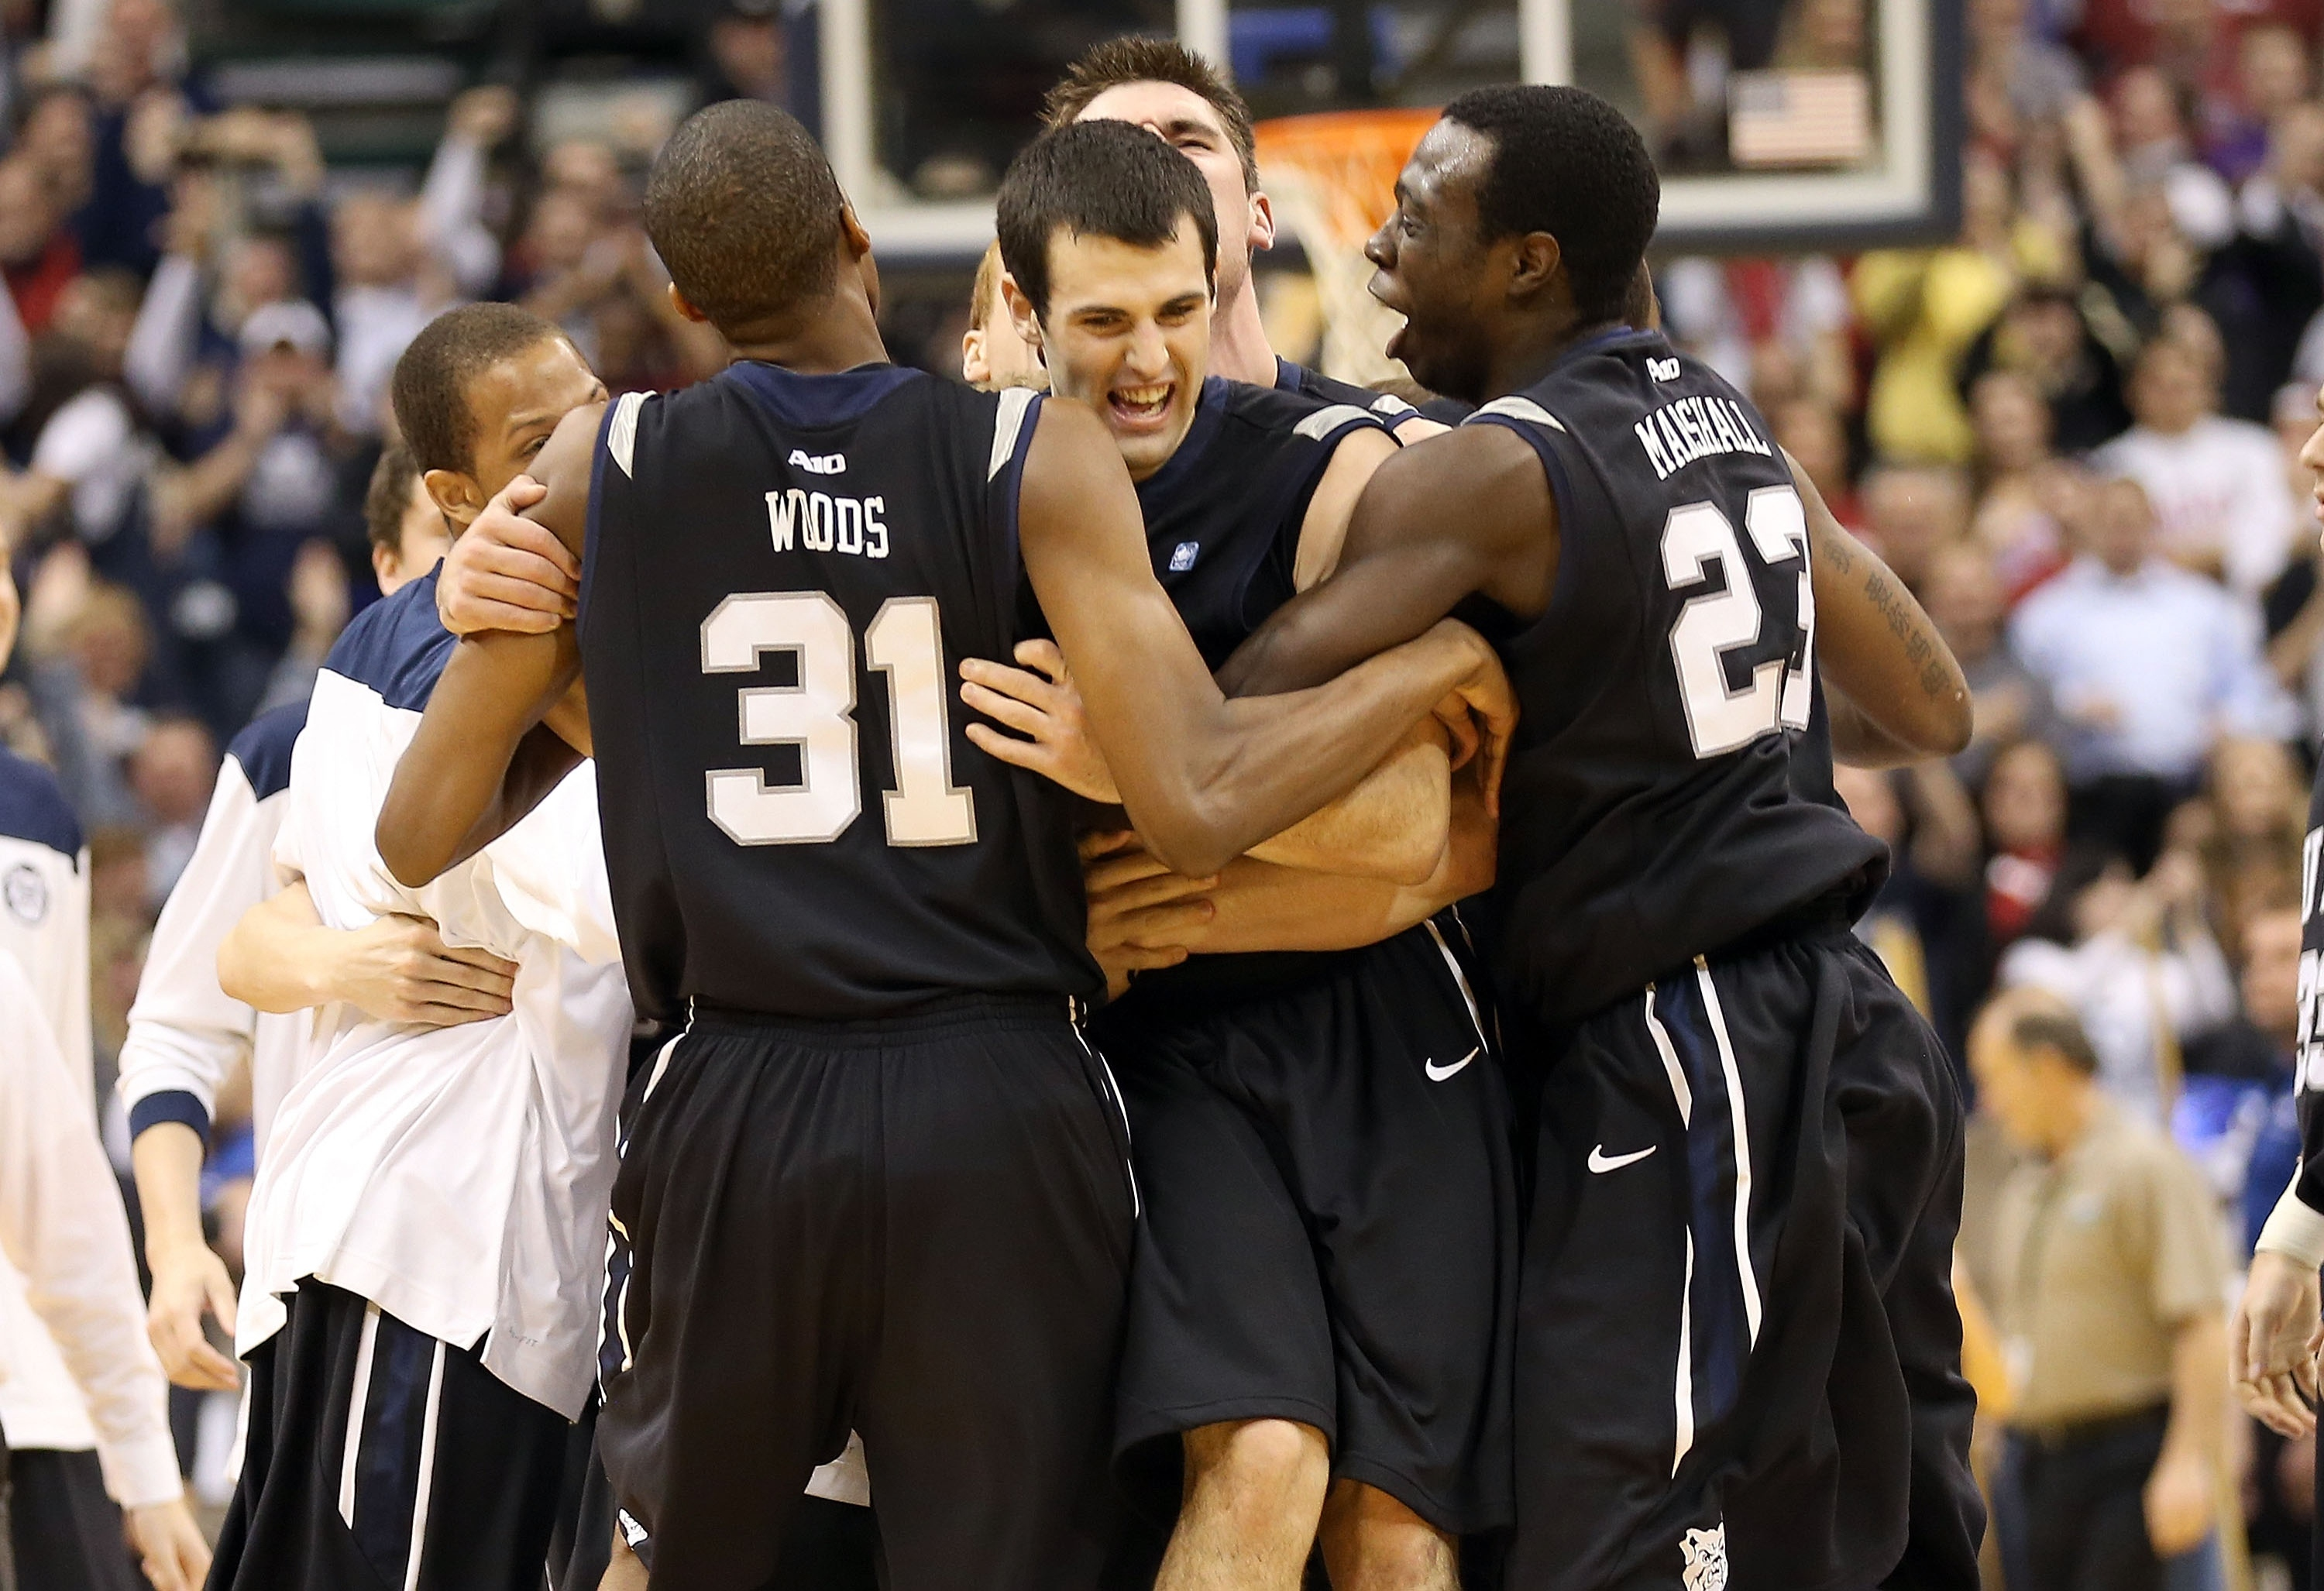 Alex Barlow, center, is mobbed by Butler teammates after beating Indiana. (Getty Images)